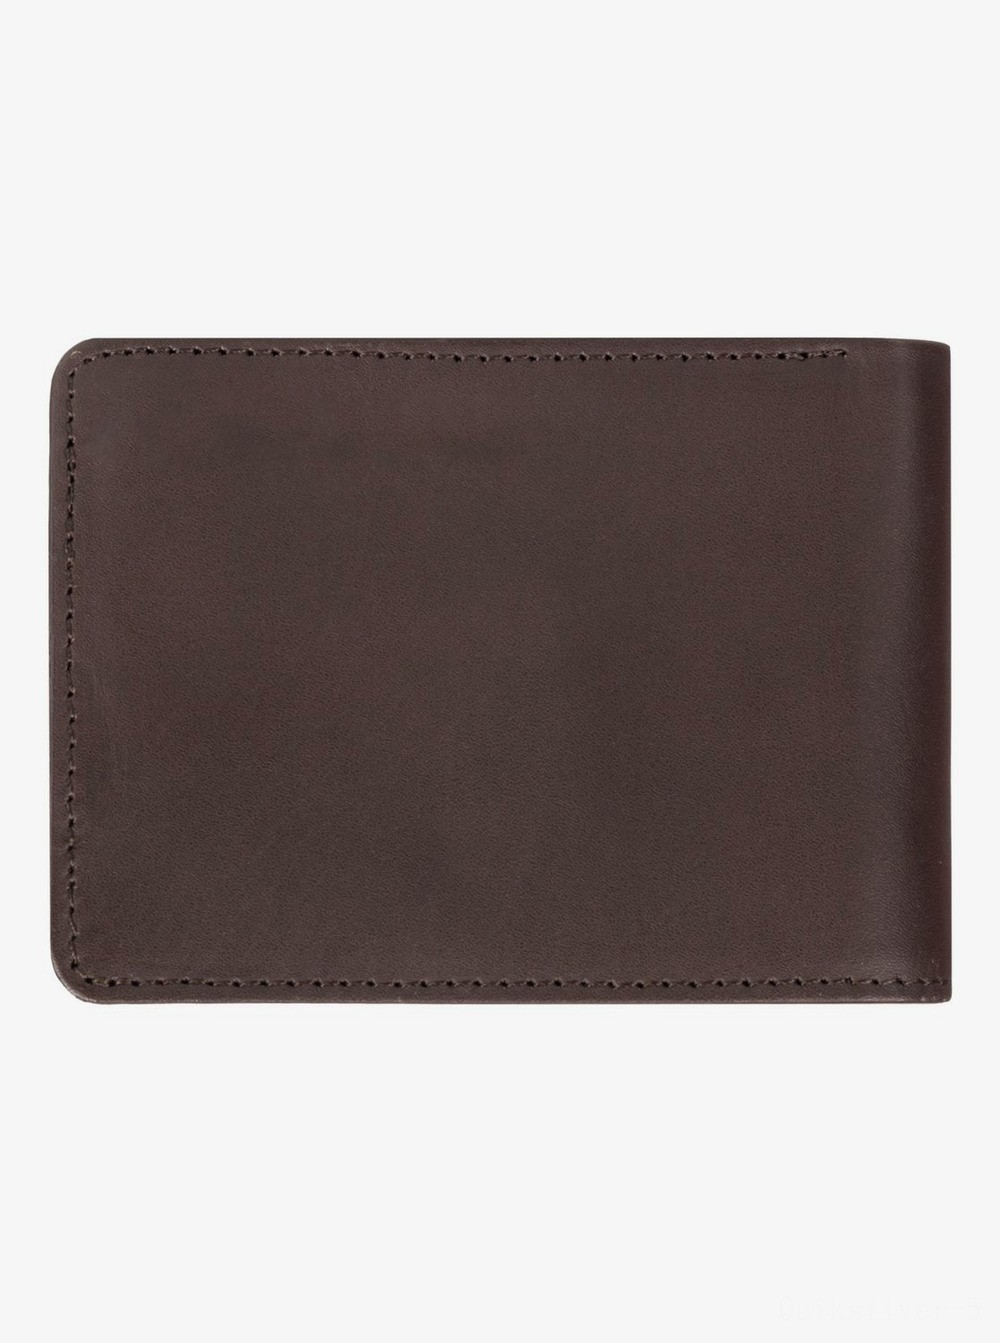 last chance mack bi-fold leather wallet - chocolate brown best price limited sale